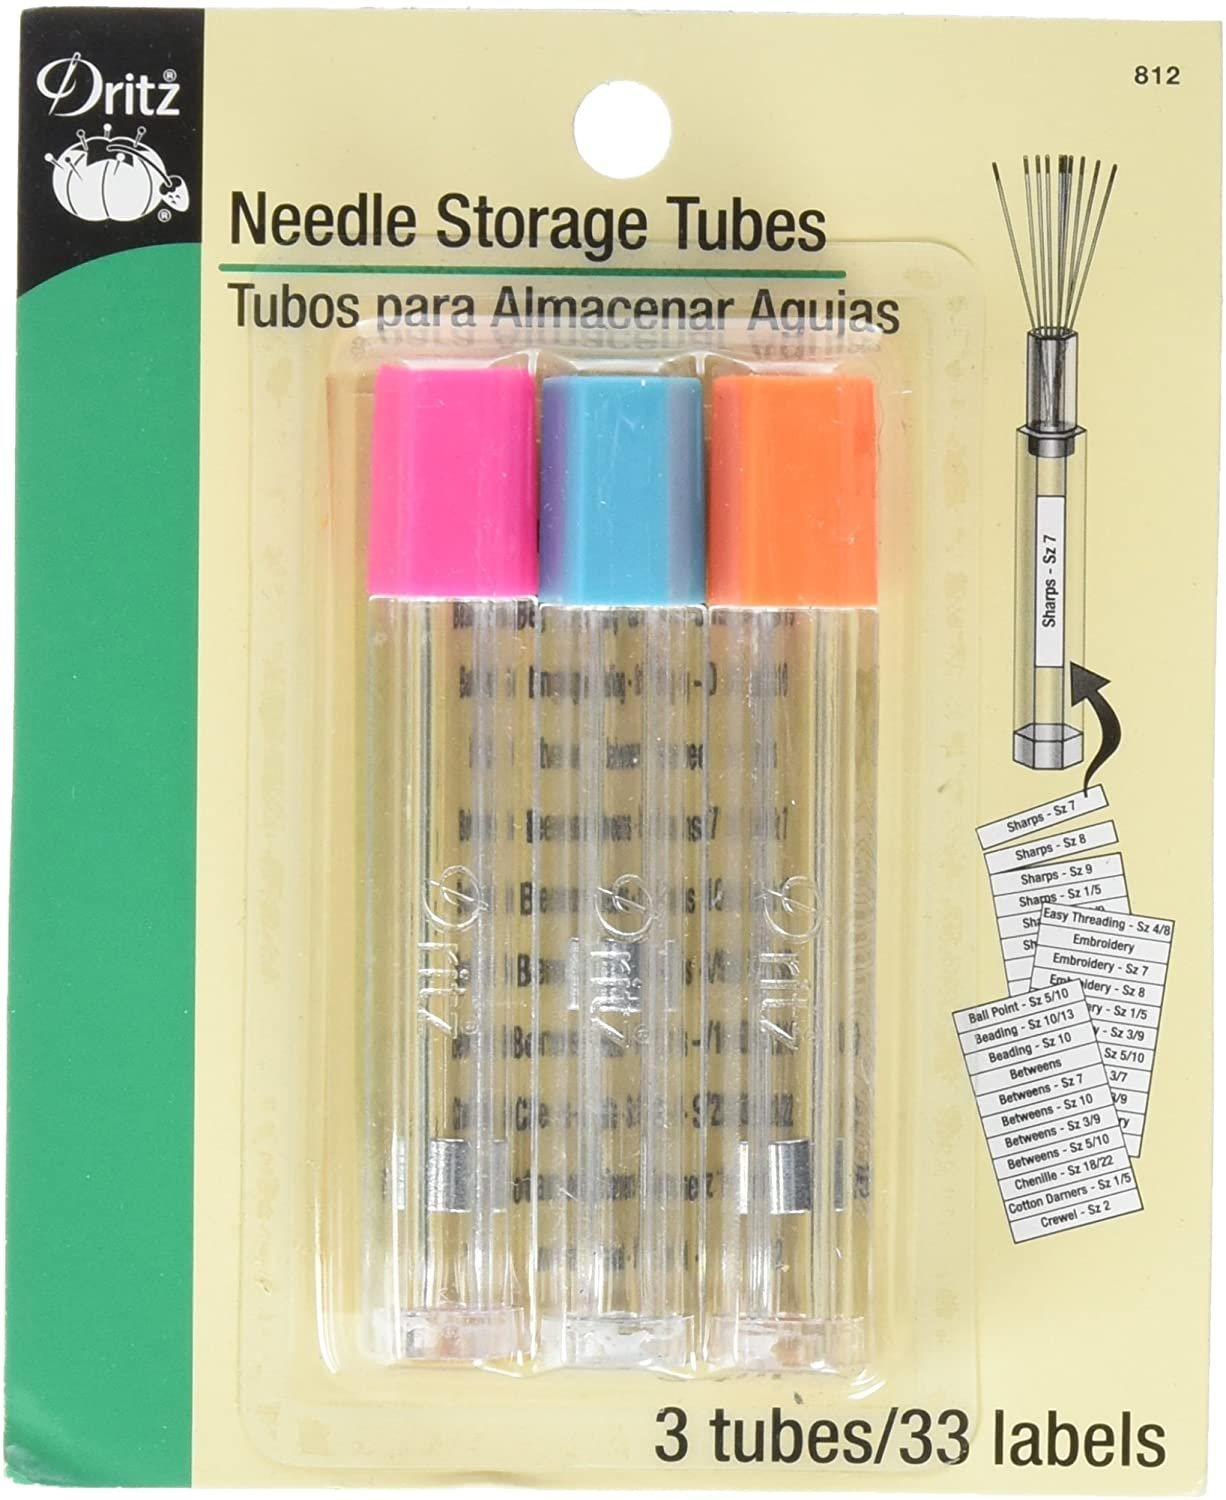 Needle Storage Tubes with 33 Labels by Dritz 812